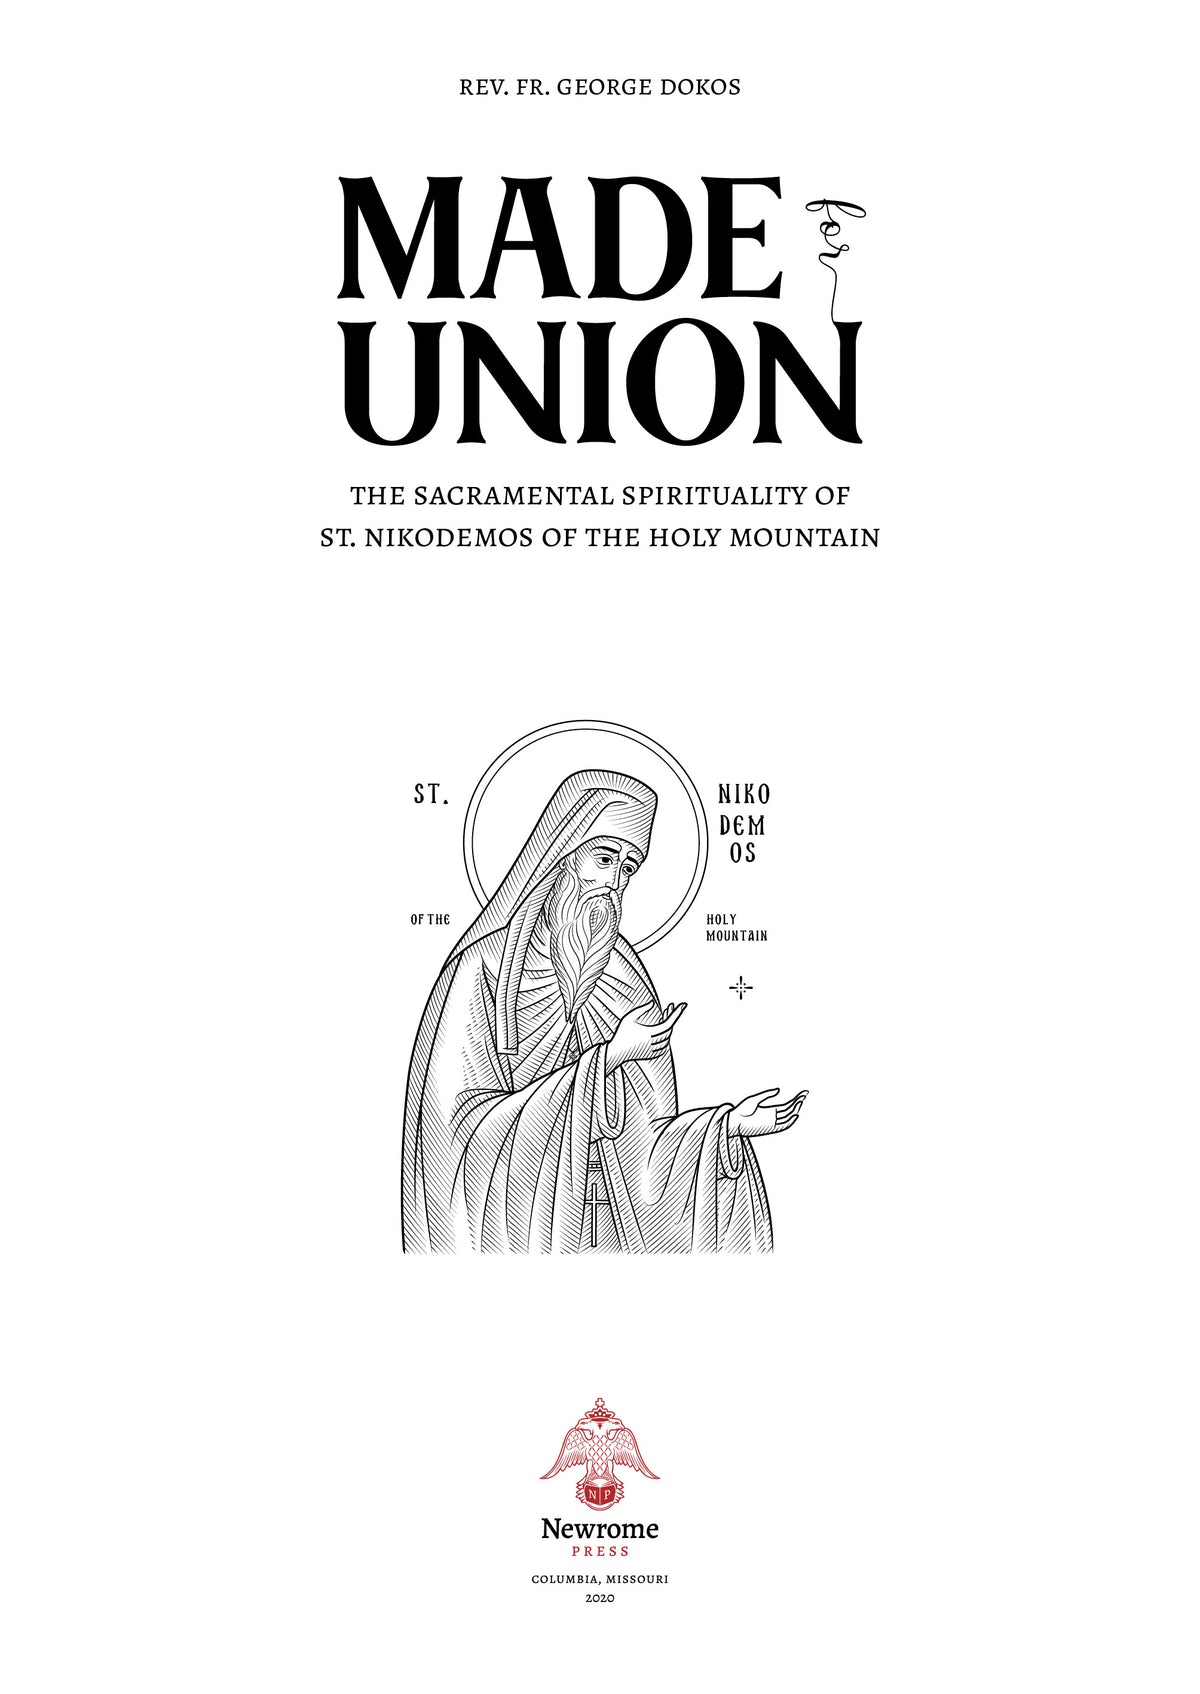 Made for Union: The Sacramental Spirituality of St. Nikodemos of the Holy Mountain